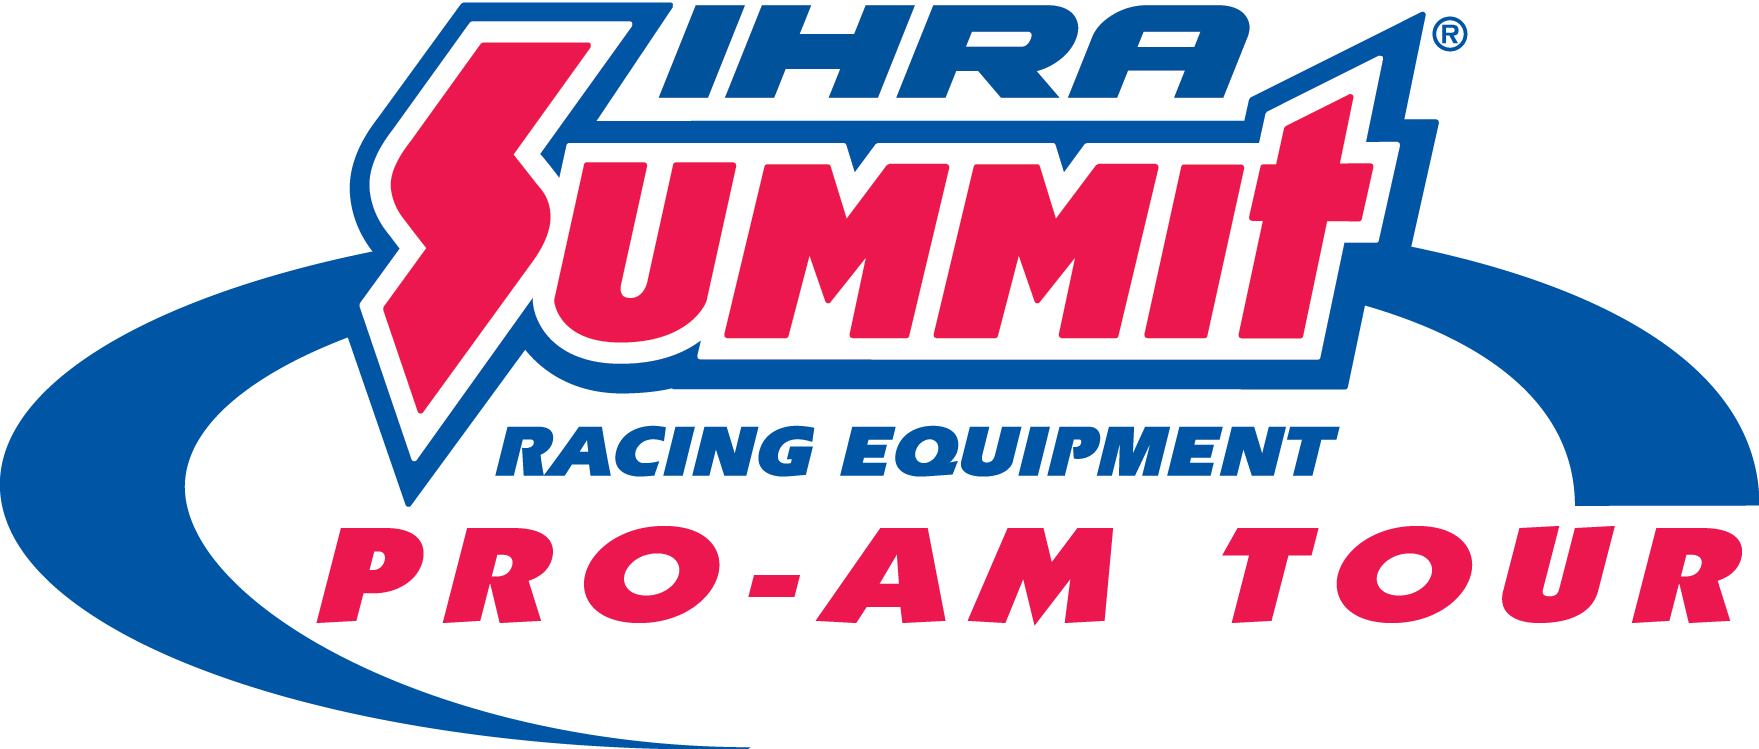 FREE LIVE STREAMING VIDEO From The IHRA Pro-Am In Bradenton Florida Right Here!